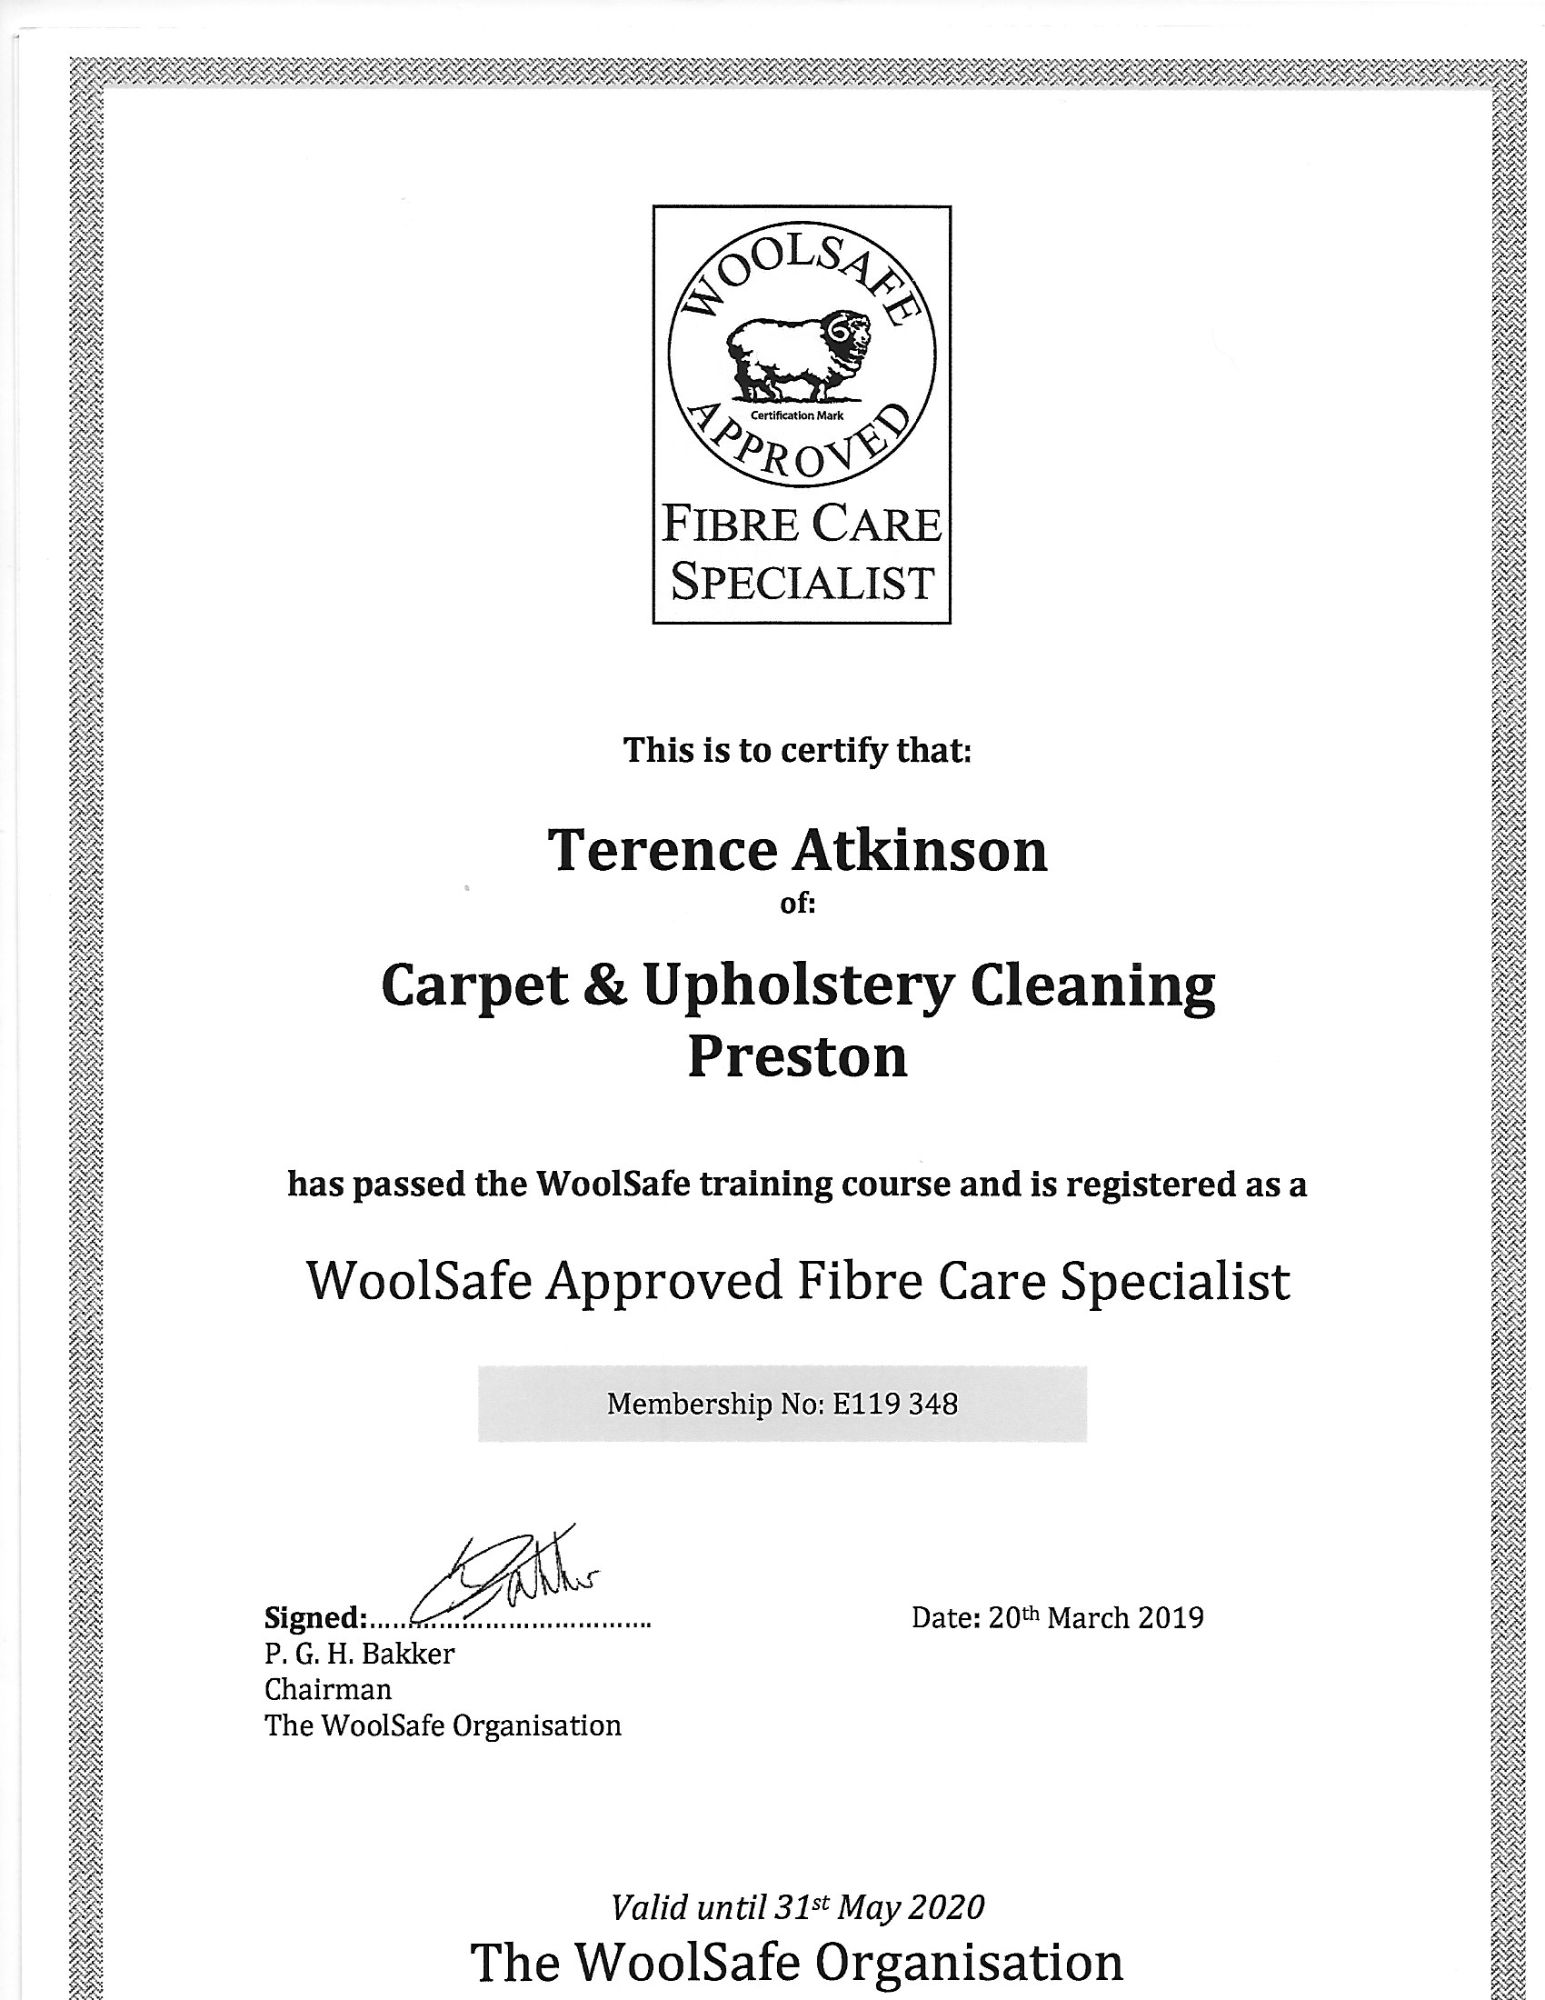 Woolsafe approved fibre care certificate Carpet & Upholstery Cleaning Lancashire